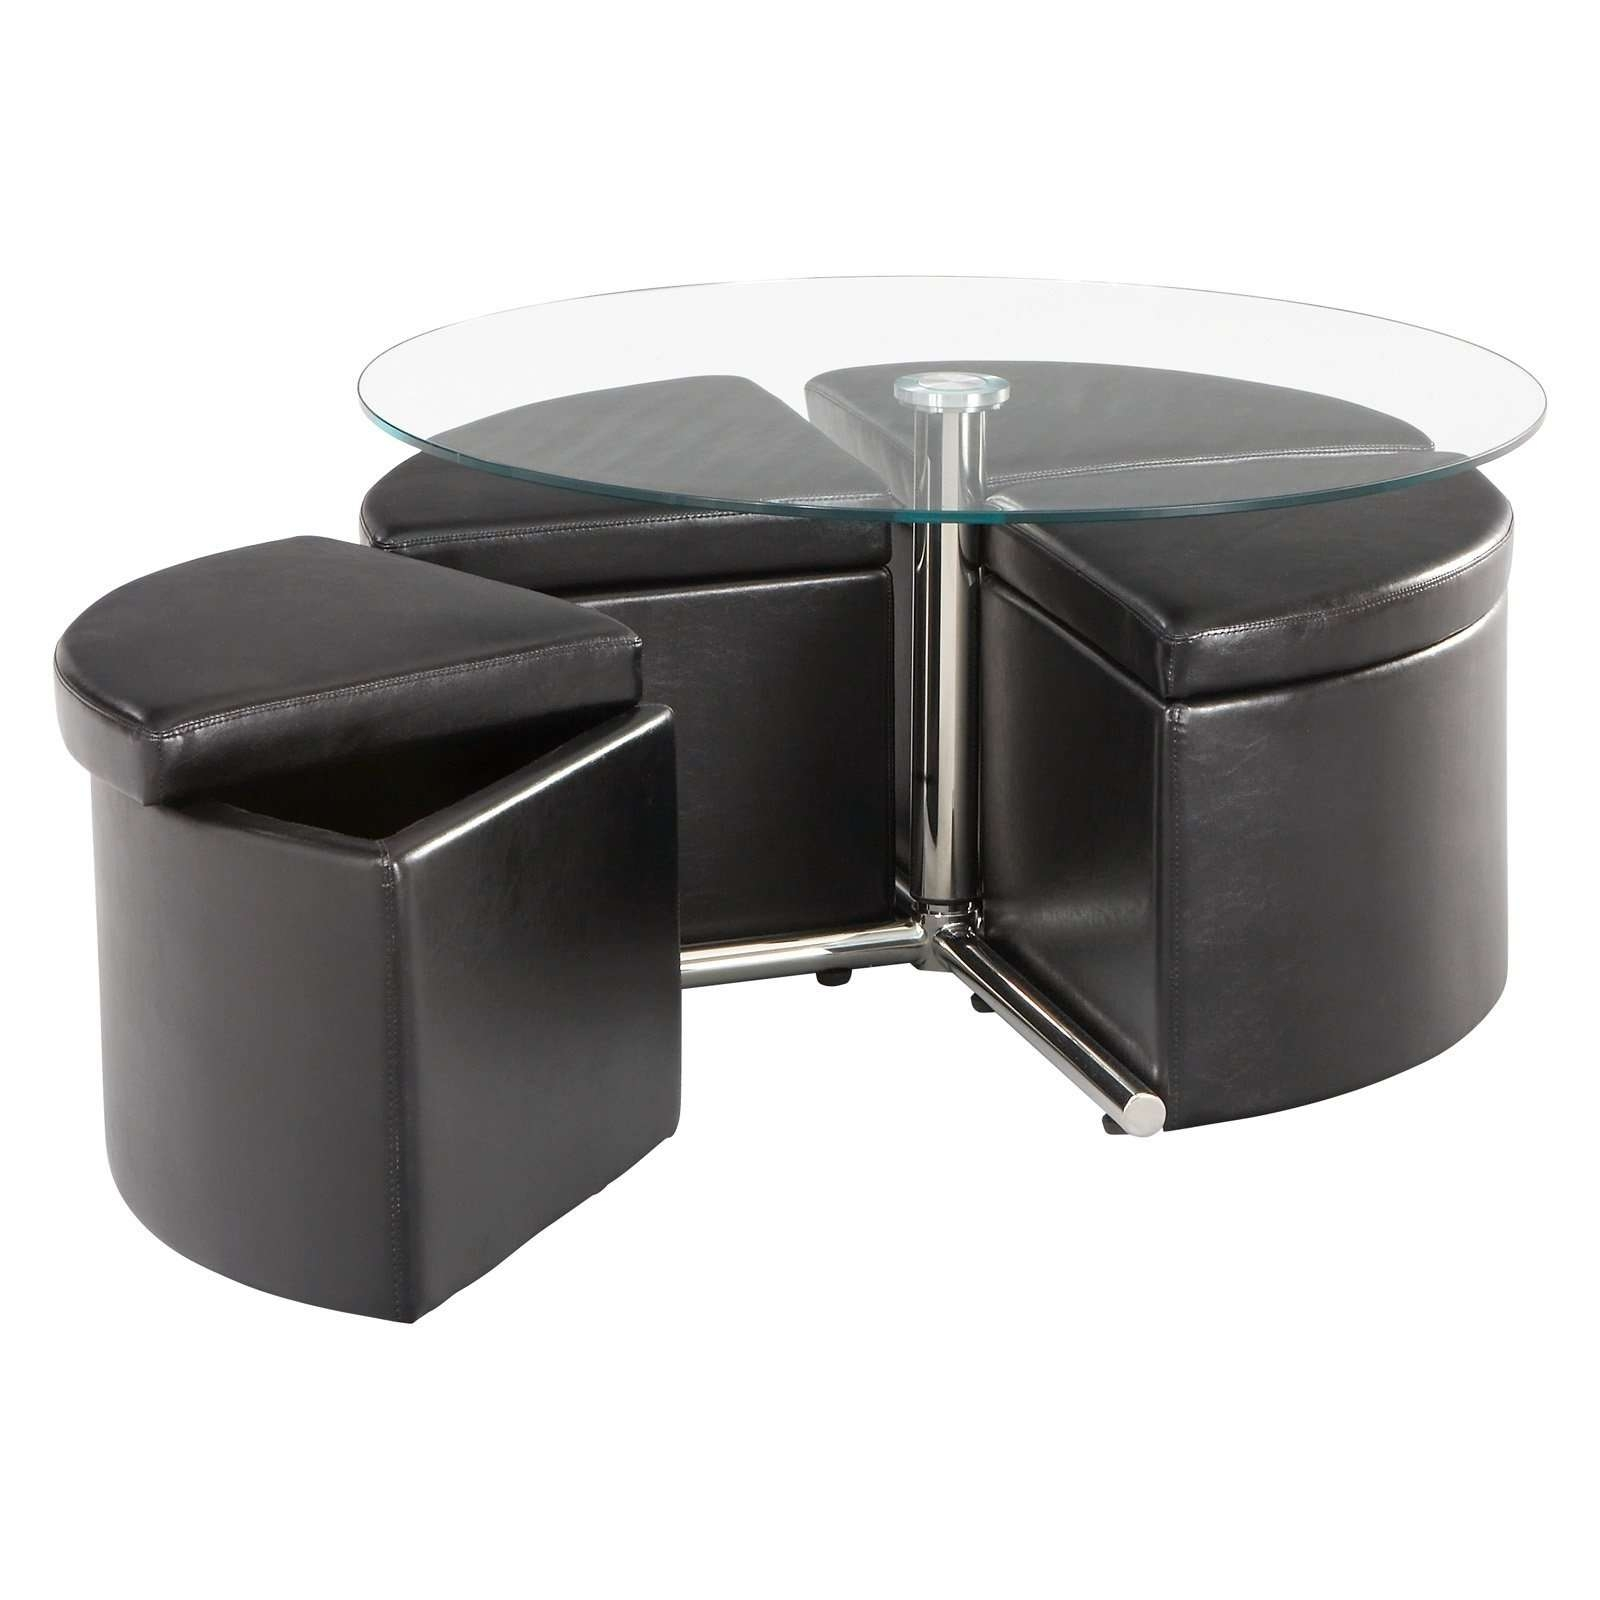 2017 Round Coffee Tables With Storages Within Good Round Coffee Table With Storage On Round Coffee Tables With (View 1 of 20)